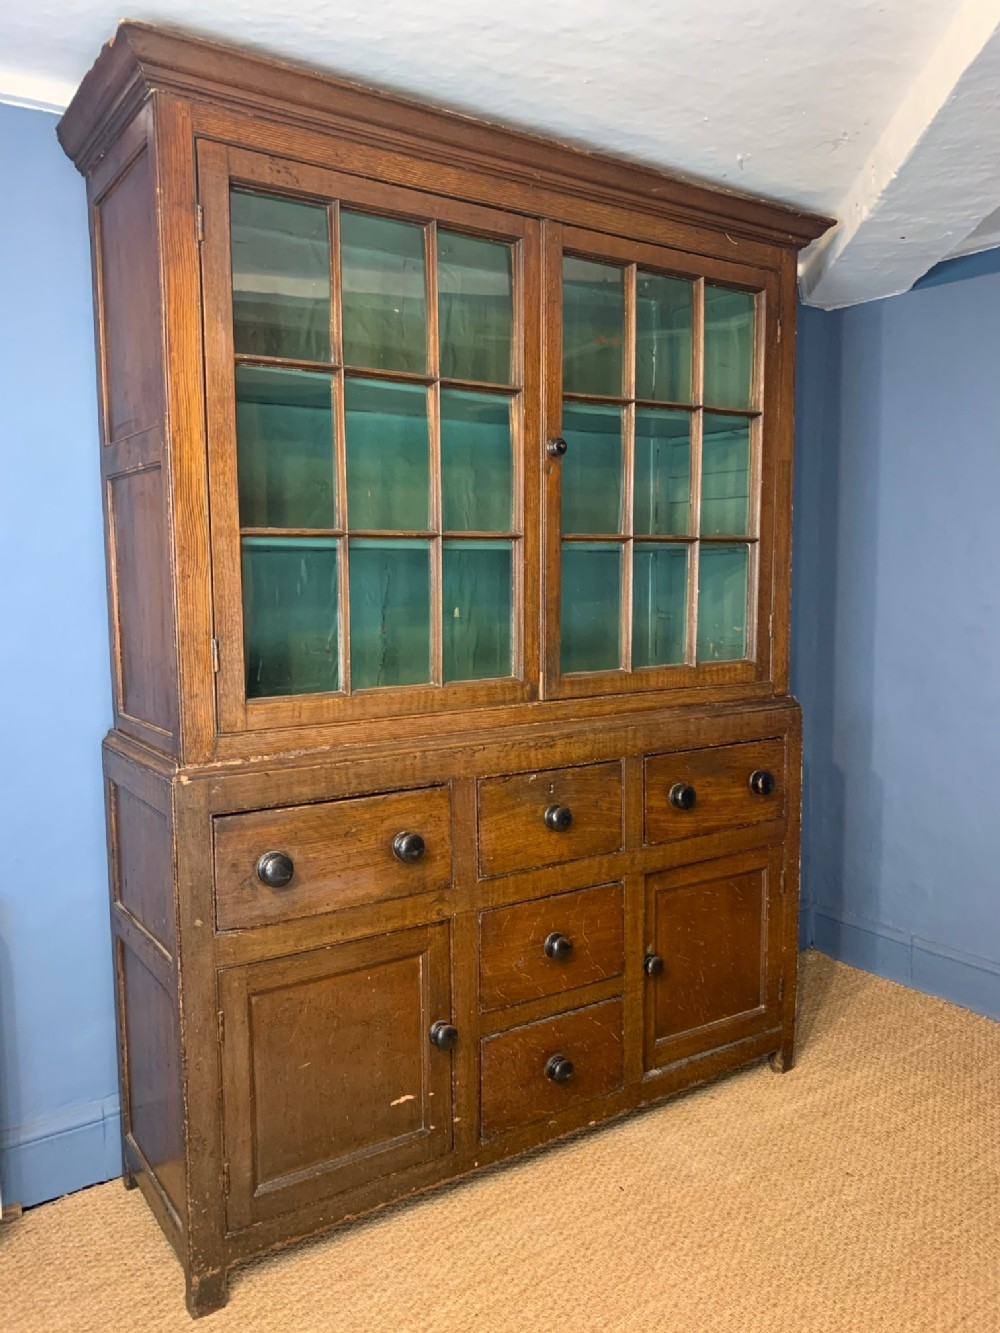 a mid 19th century cornish glazed dresser circa 1850